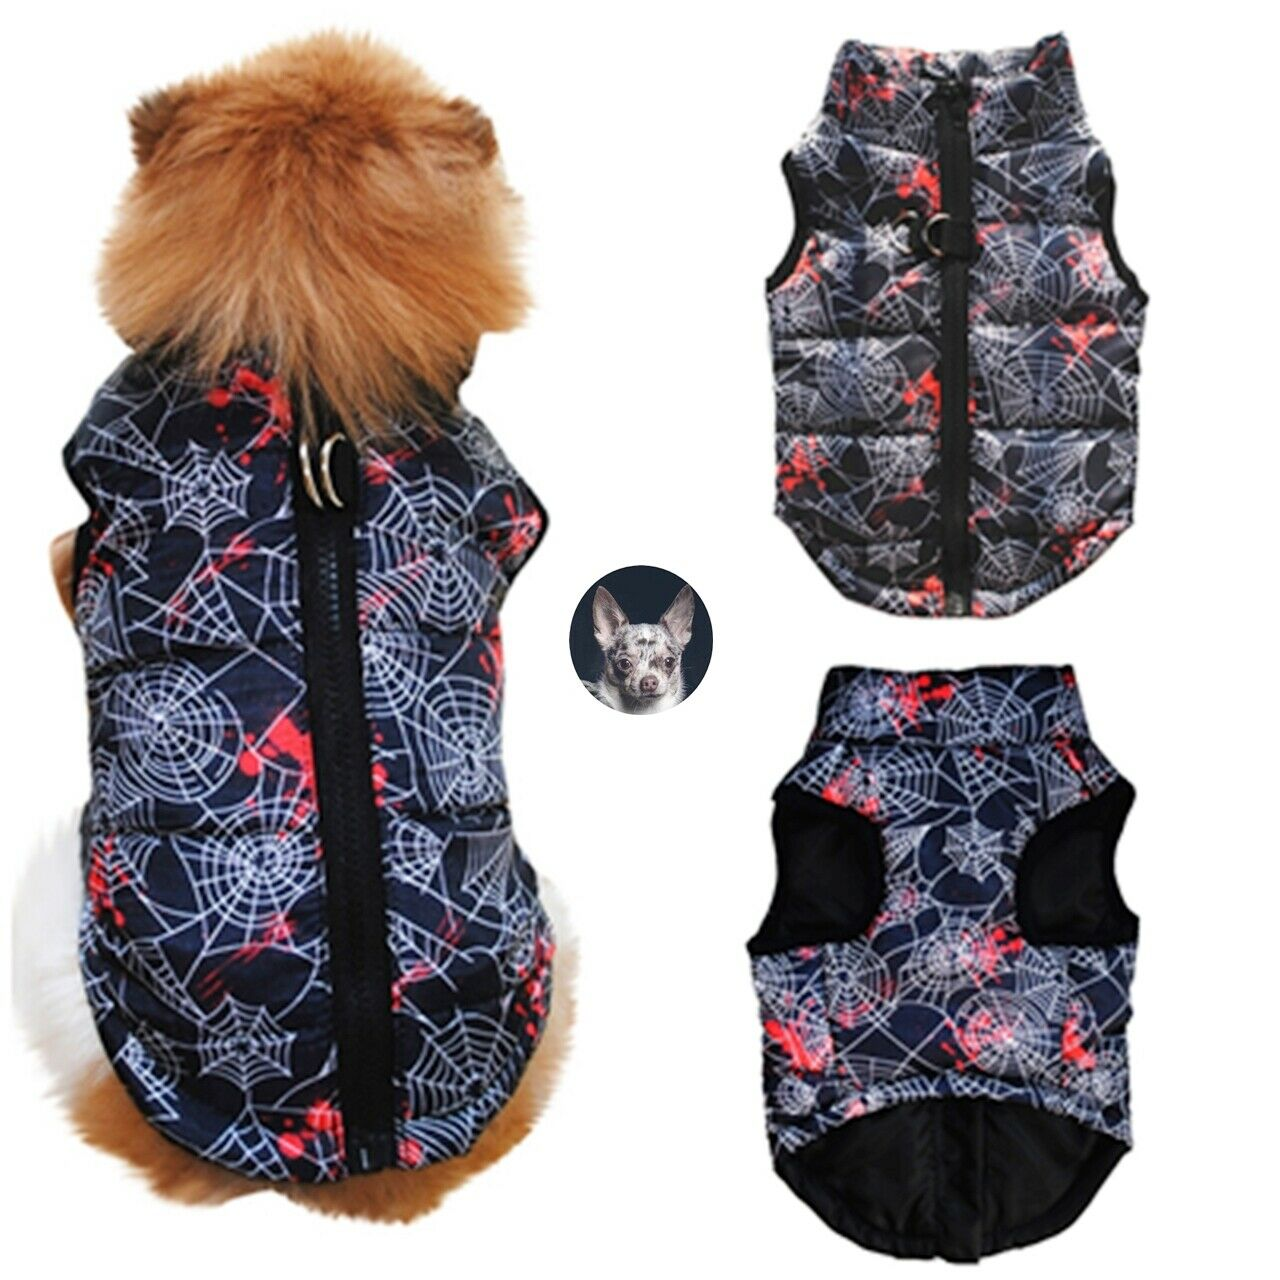 Hundeweste Softgeschirr Mantel Welpe Jacke Winter Chihuahua Pullover XS-L